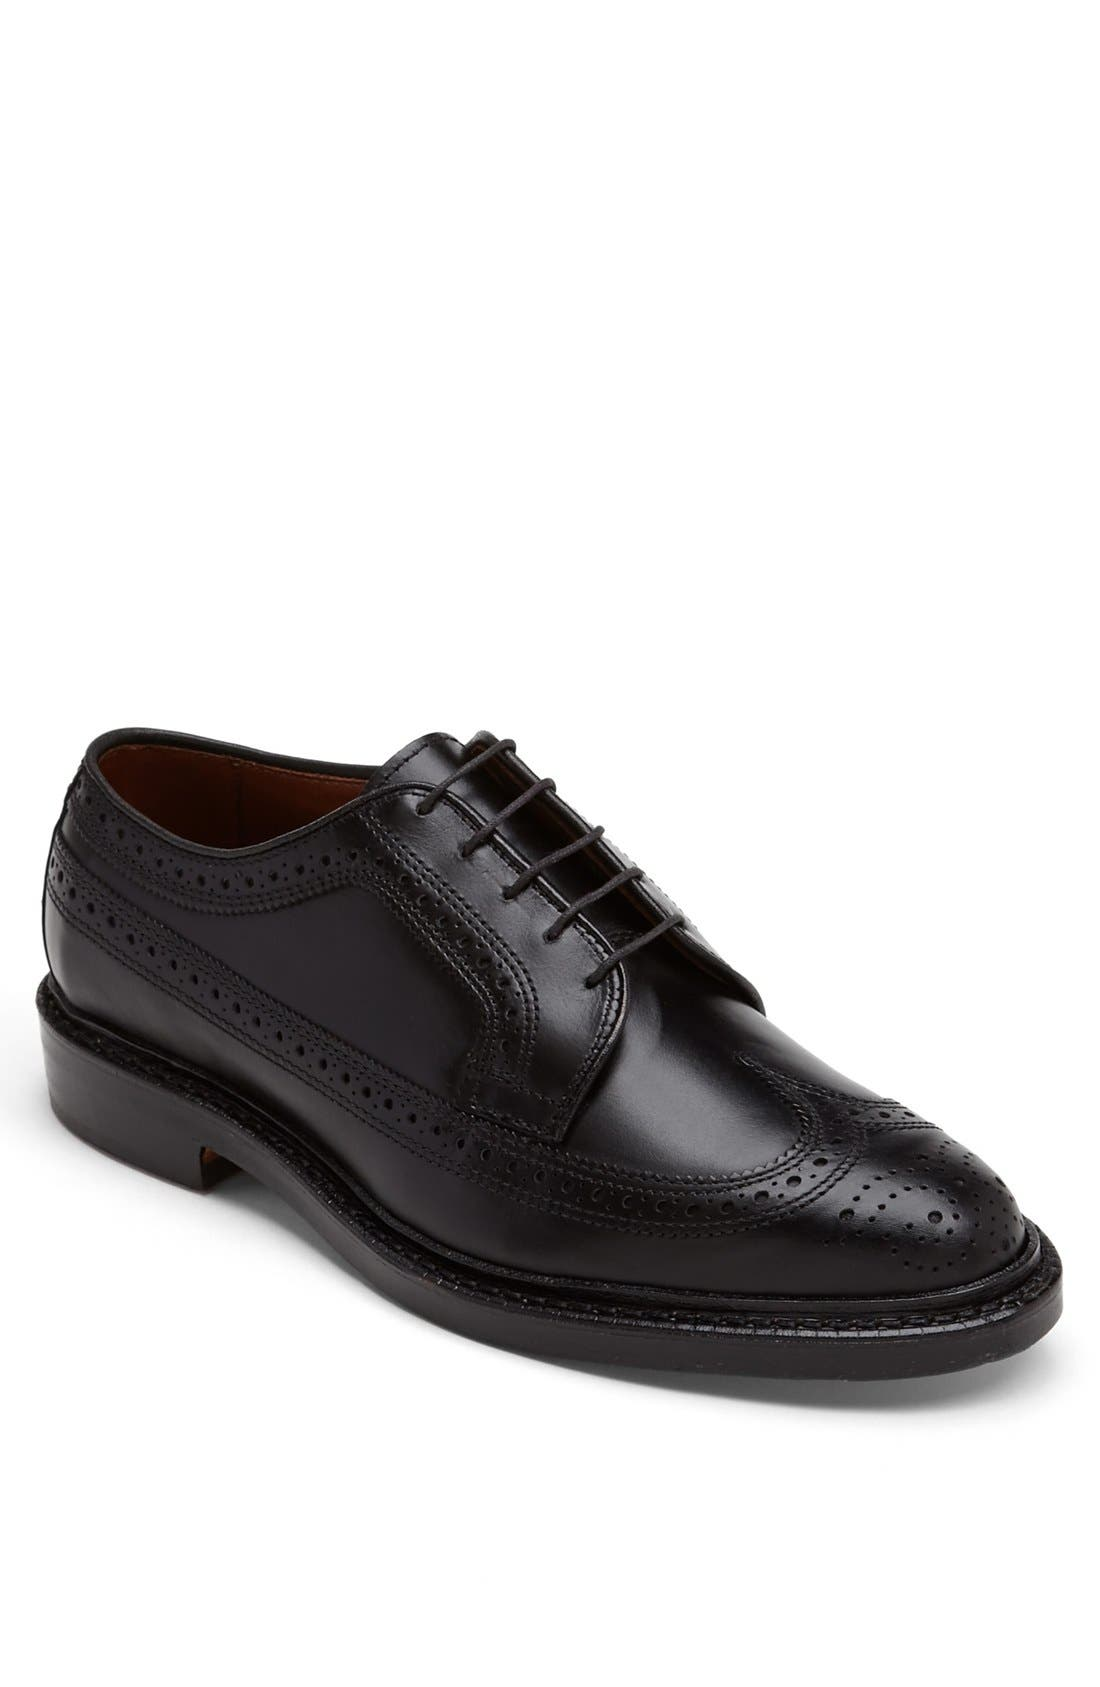 Main Image - Allen Edmonds 'MacNeil' Oxford (Men)